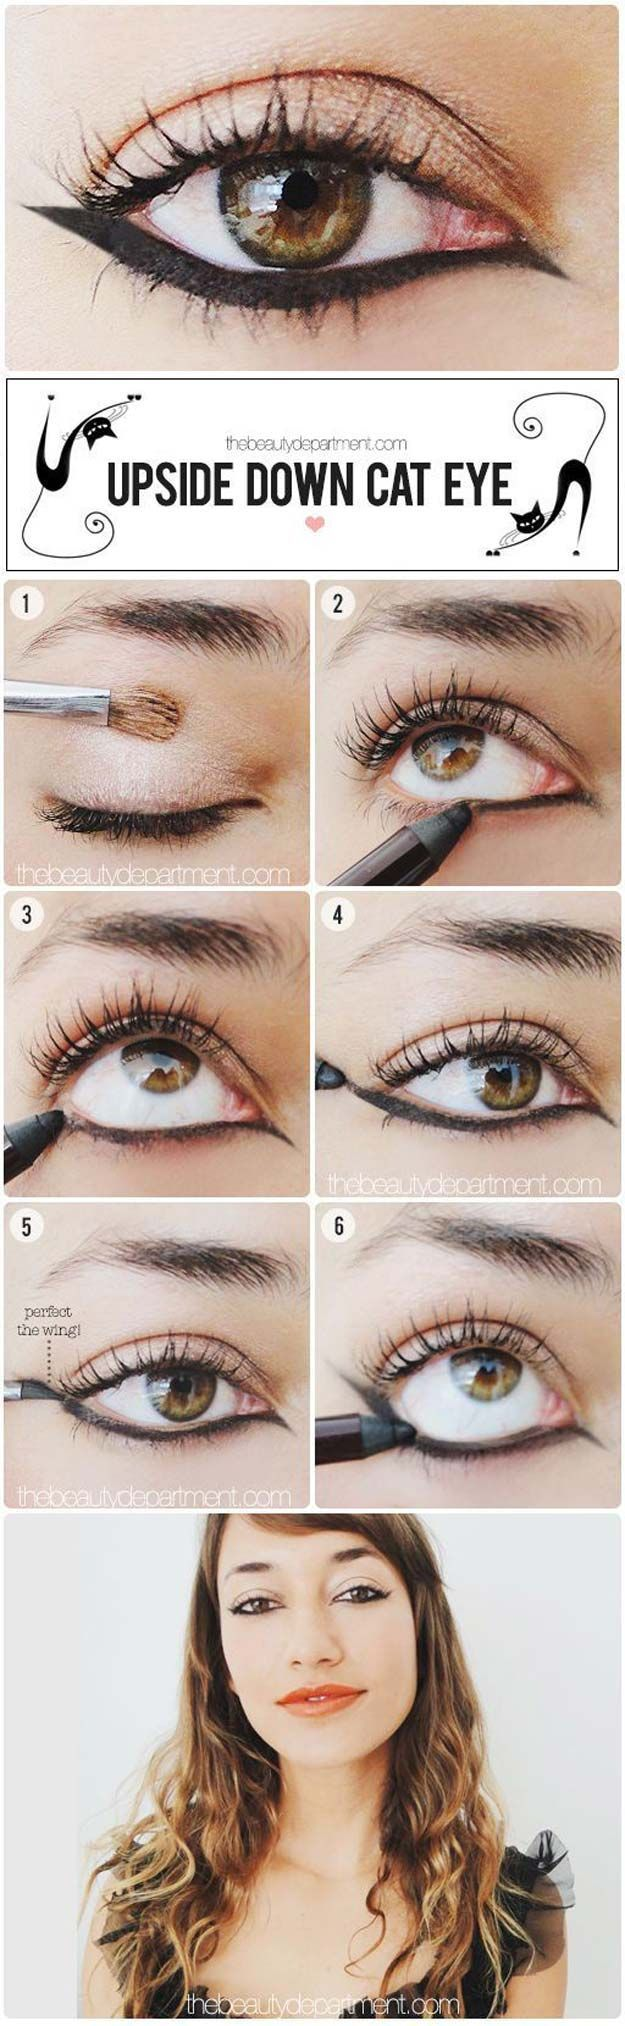 Winged Eyeliner Tutorials - Tutorial, Upside Down Cat Eye- Easy Step By Step Tutorials For Beginners and Hacks Using Tape and a Spoon, Liquid Liner, Thing Pencil Tricks and Awesome Guides for Hooded Eyes - Short Video Tutorial for Perfect Simple Dramatic Looks - thegoddess.com/winged-eyeliner-tutorials